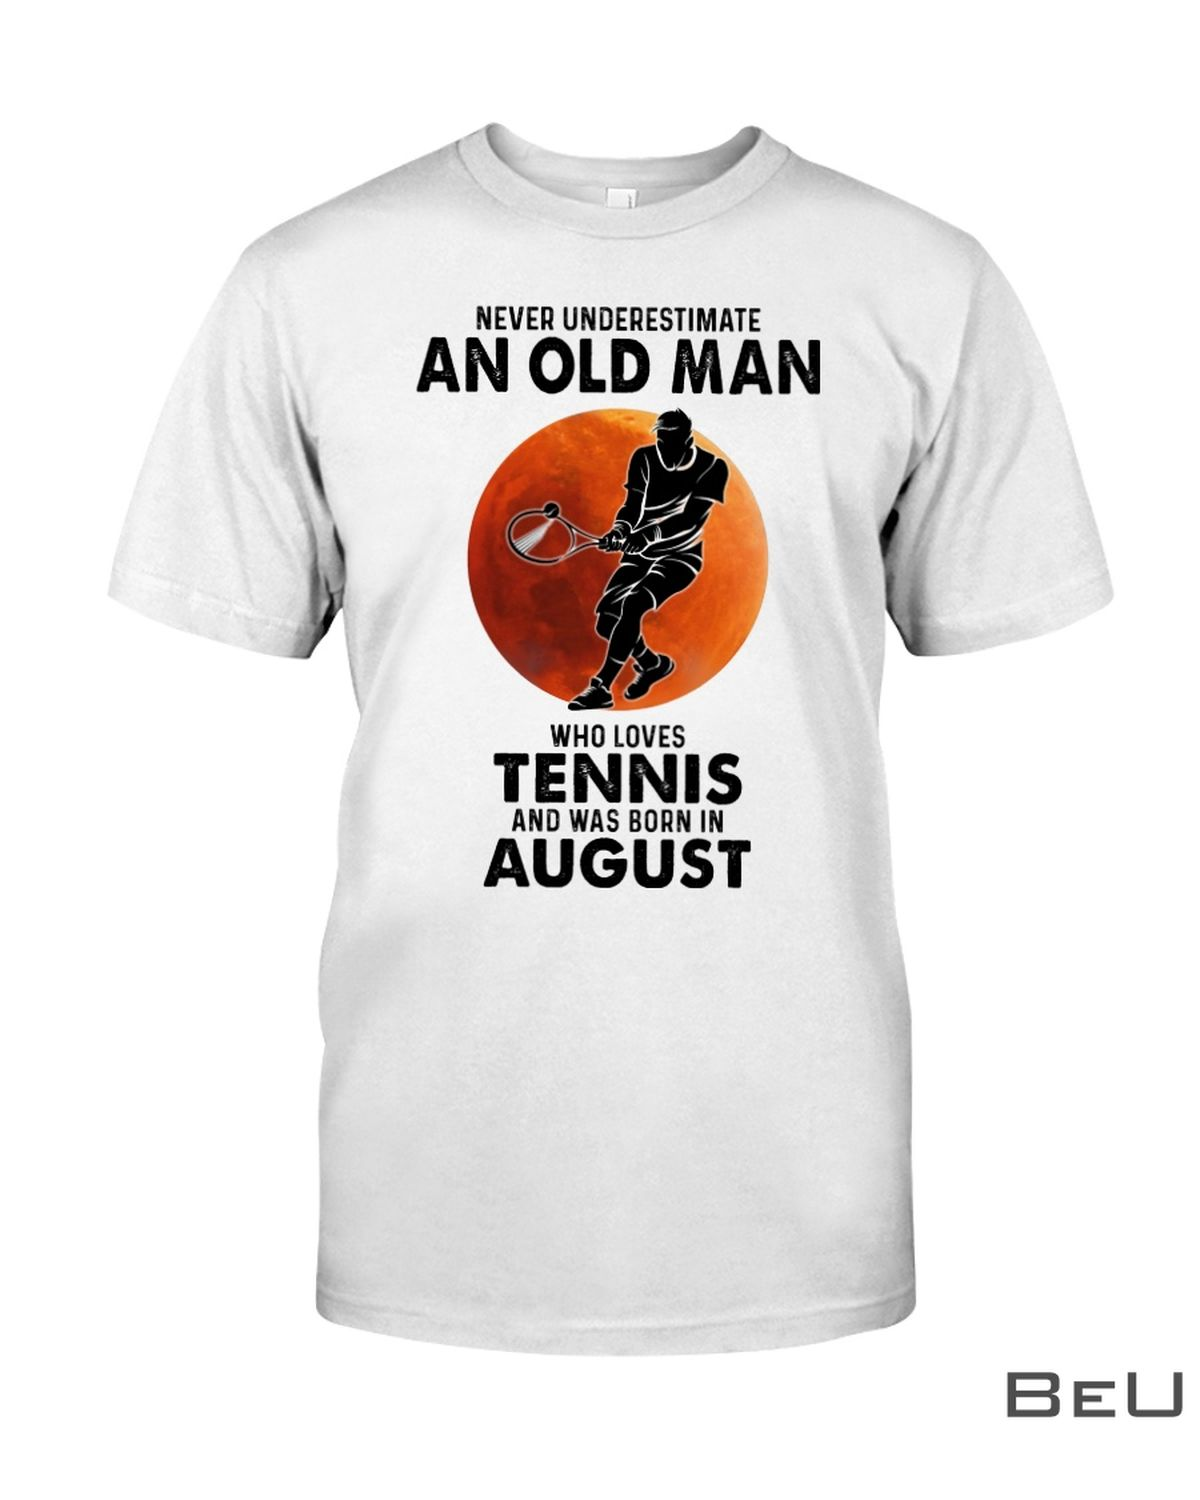 Never Underestimate An Old Man Who Loves Tennis And Was Born In August Shirt, hoodie, tank top